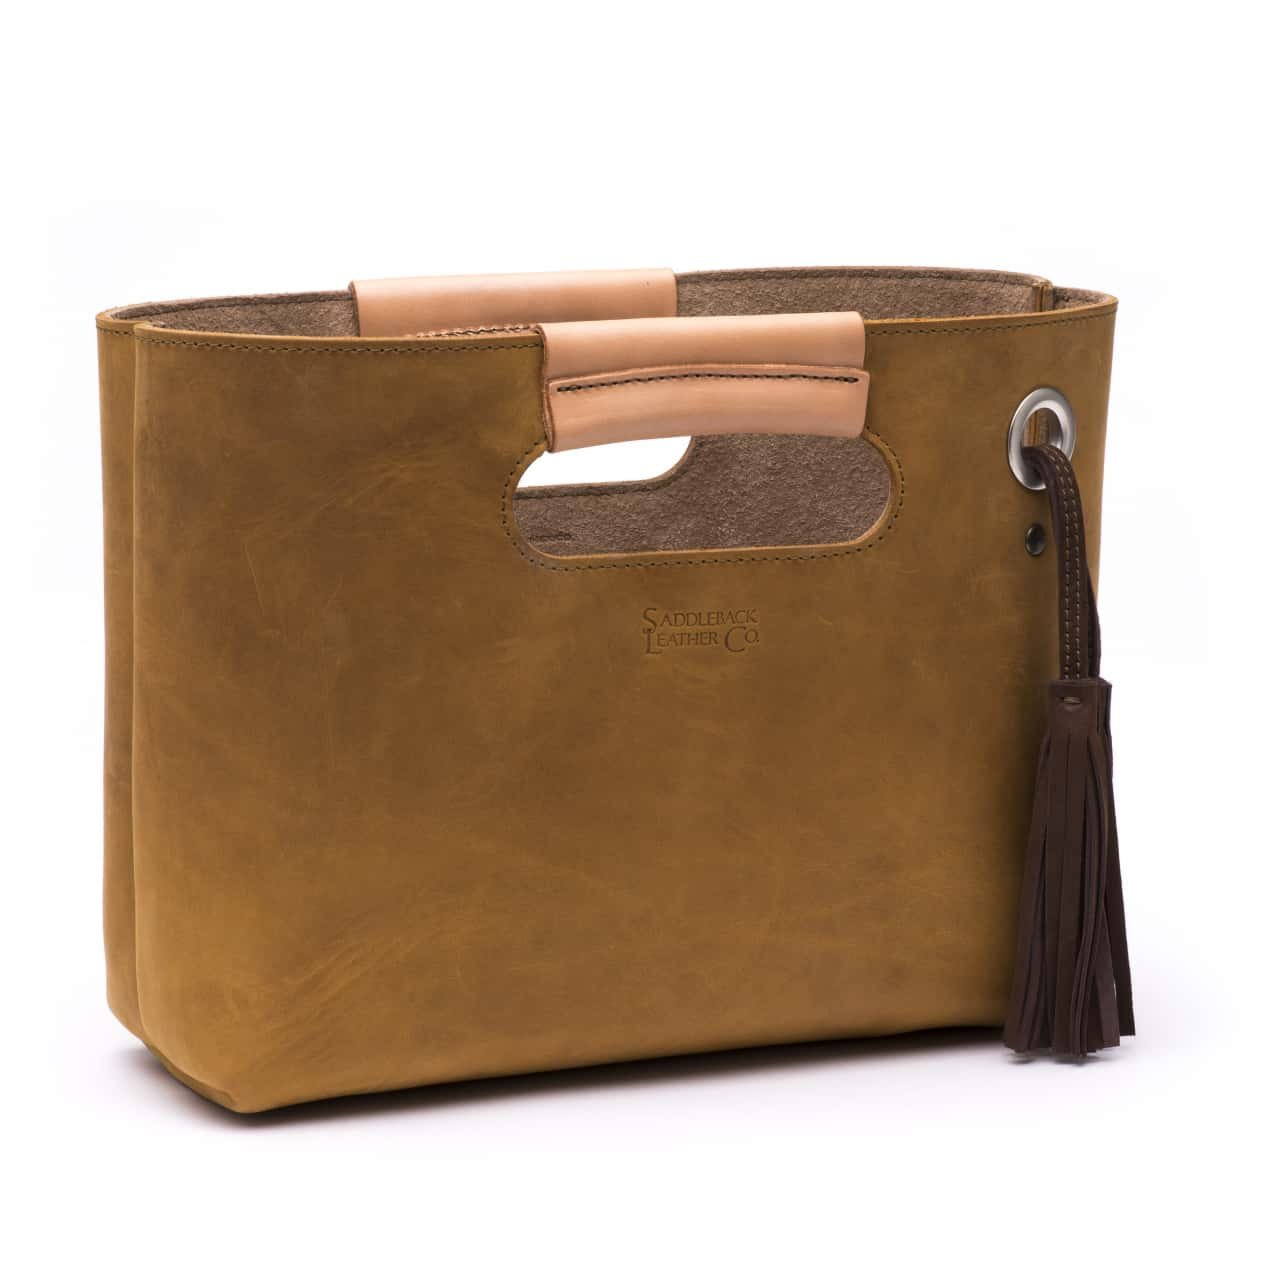 Saddleback Leather Clutch Tote - Beautiful Full Grain Leather Small Tote Bag with 100 Year Warranty